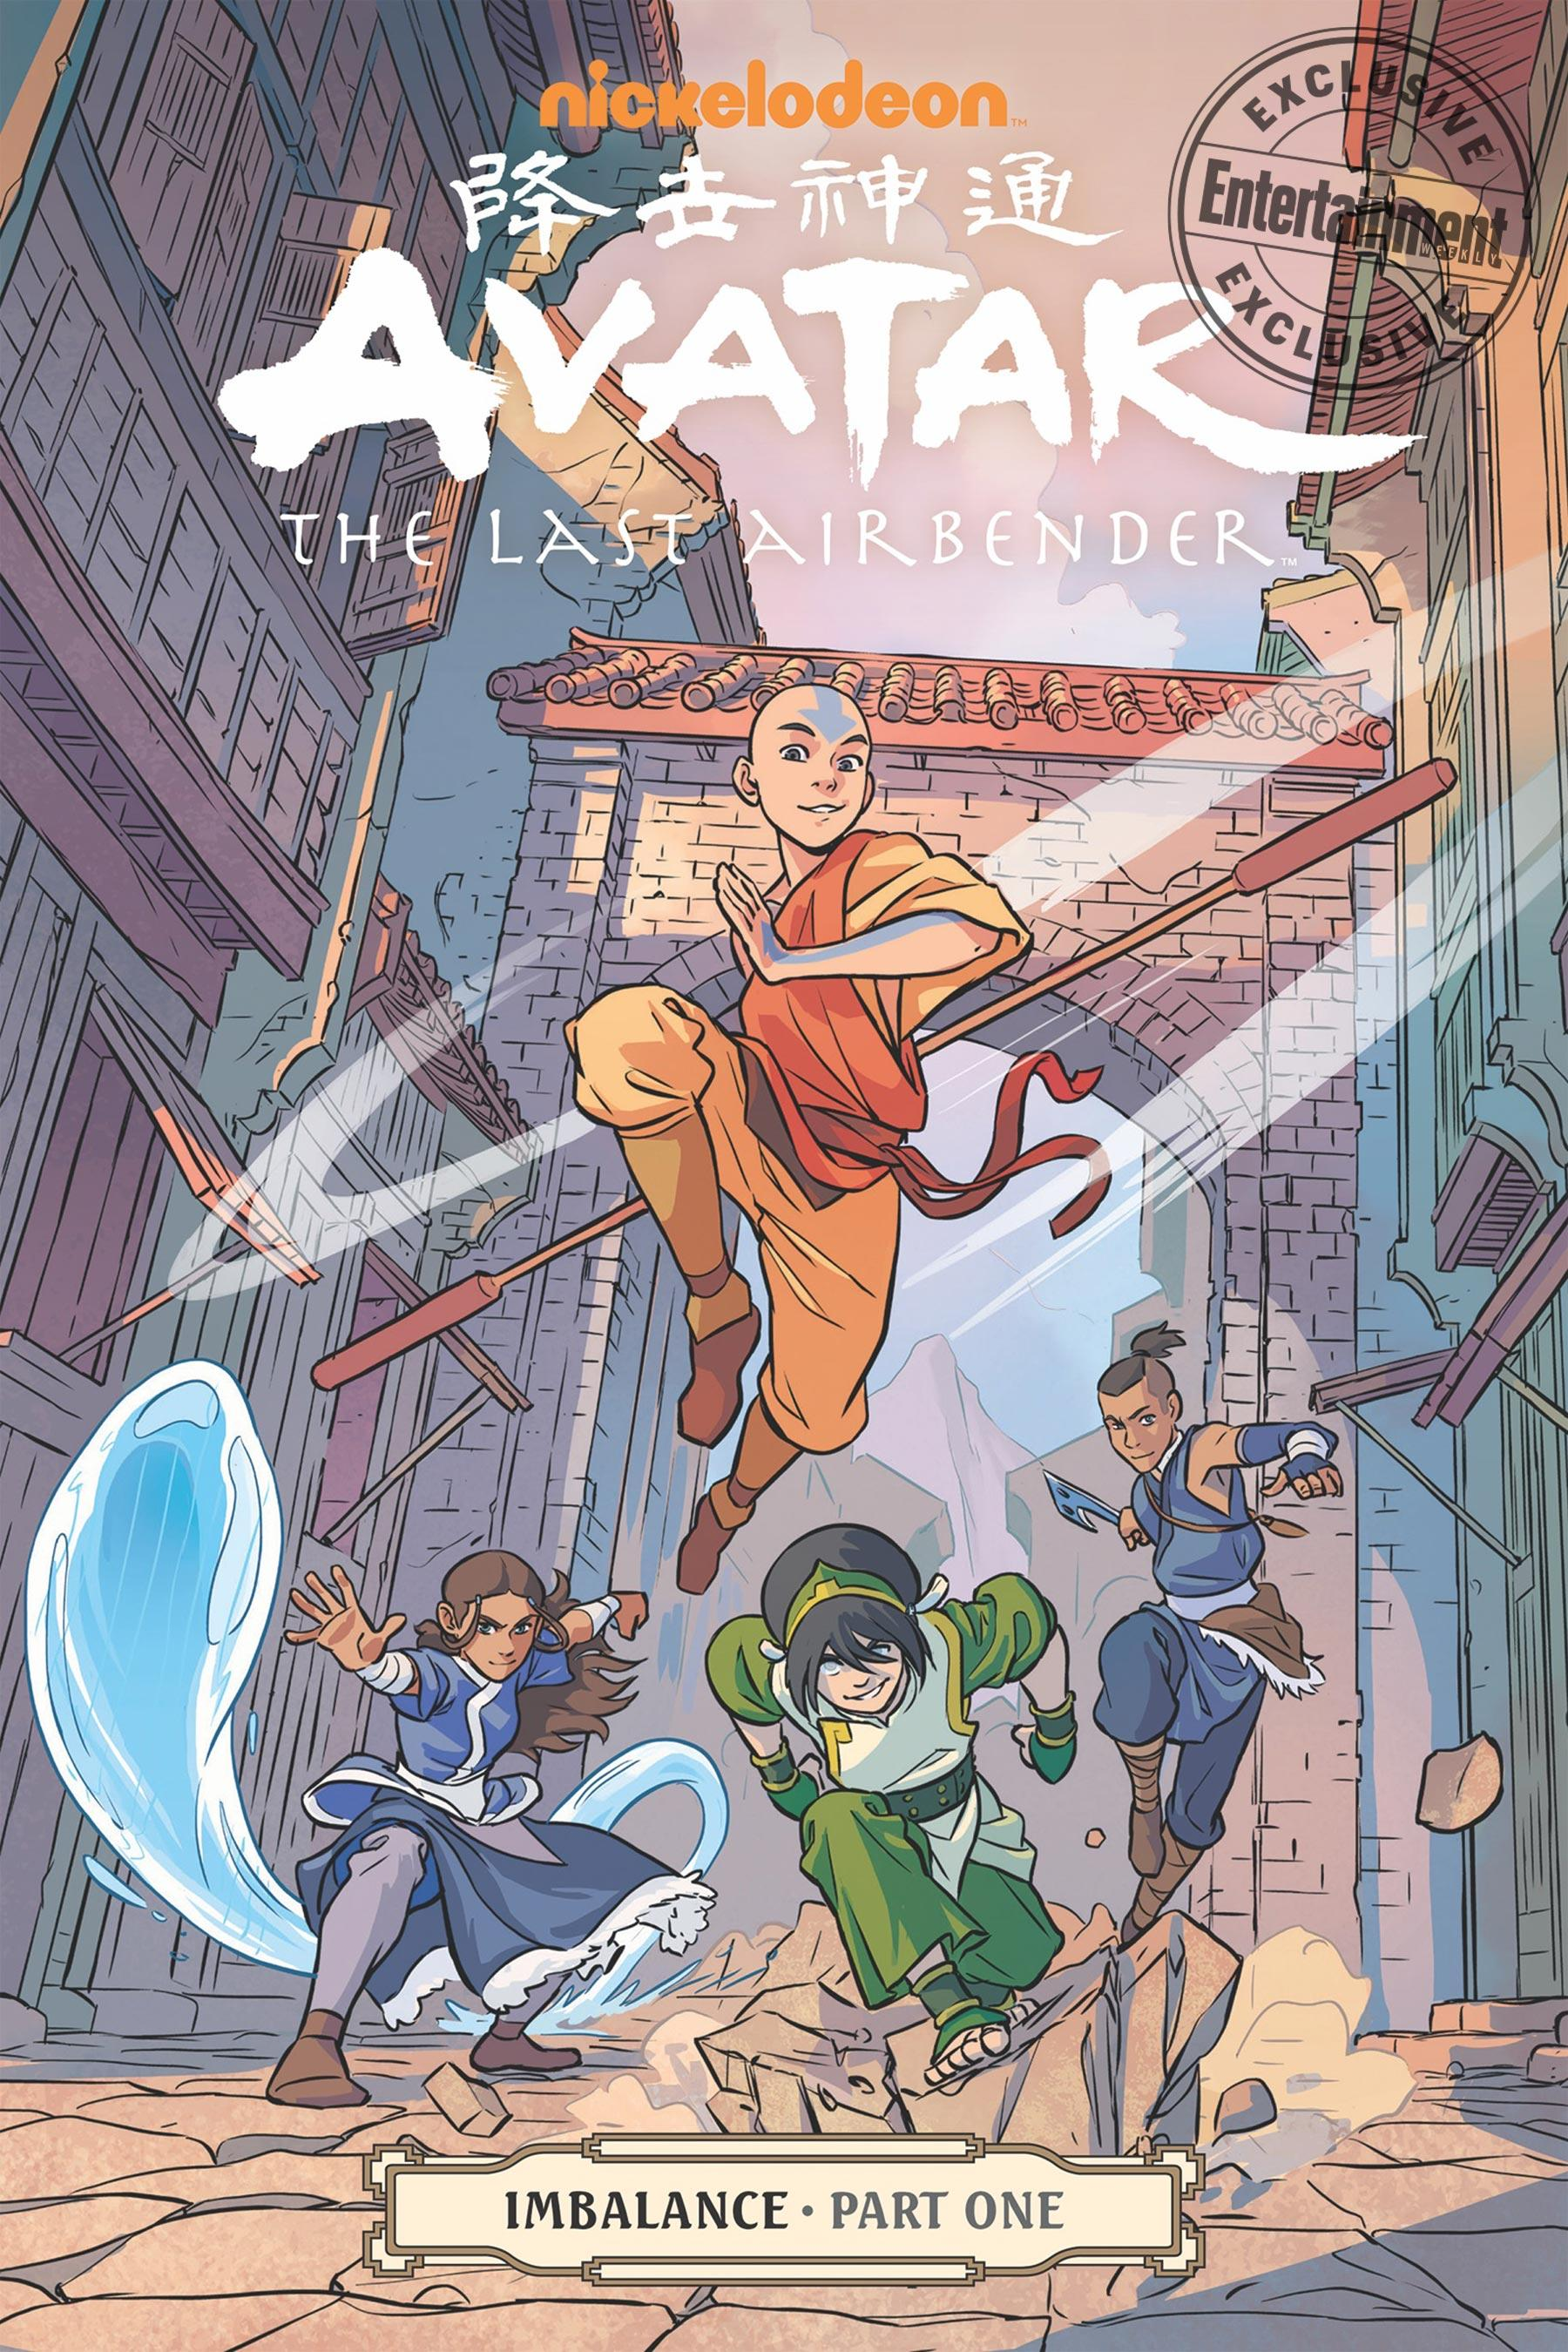 Team Aang gets a chilly reception in Avatar: The Last